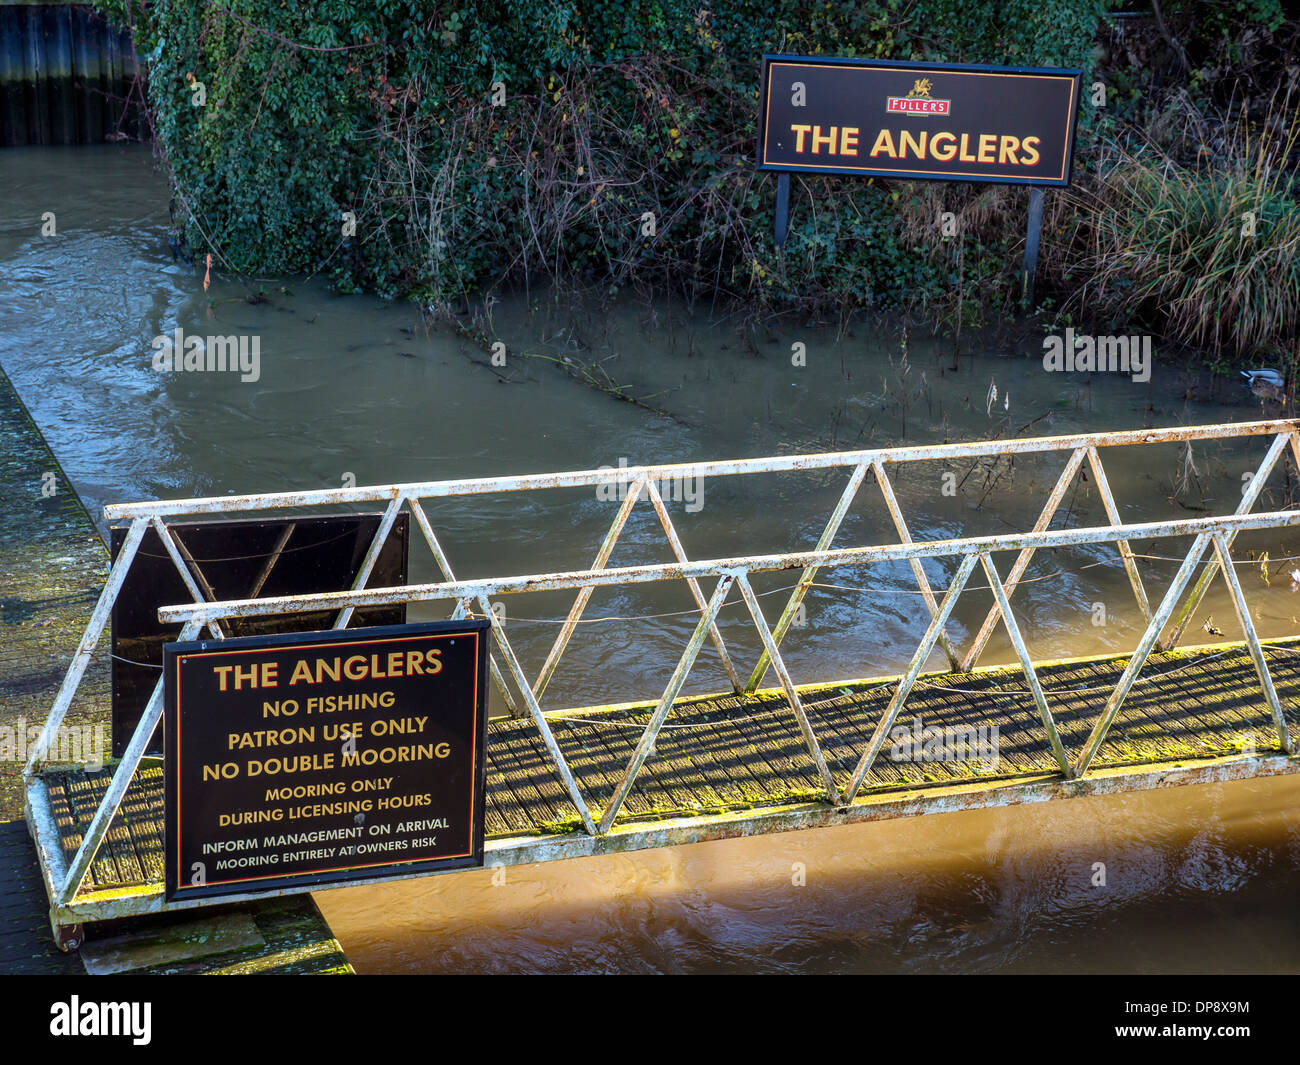 'The Anglers' Fuller's pub sign and sign banning angling next to the Thames river at Teddington, Greater - Stock Image